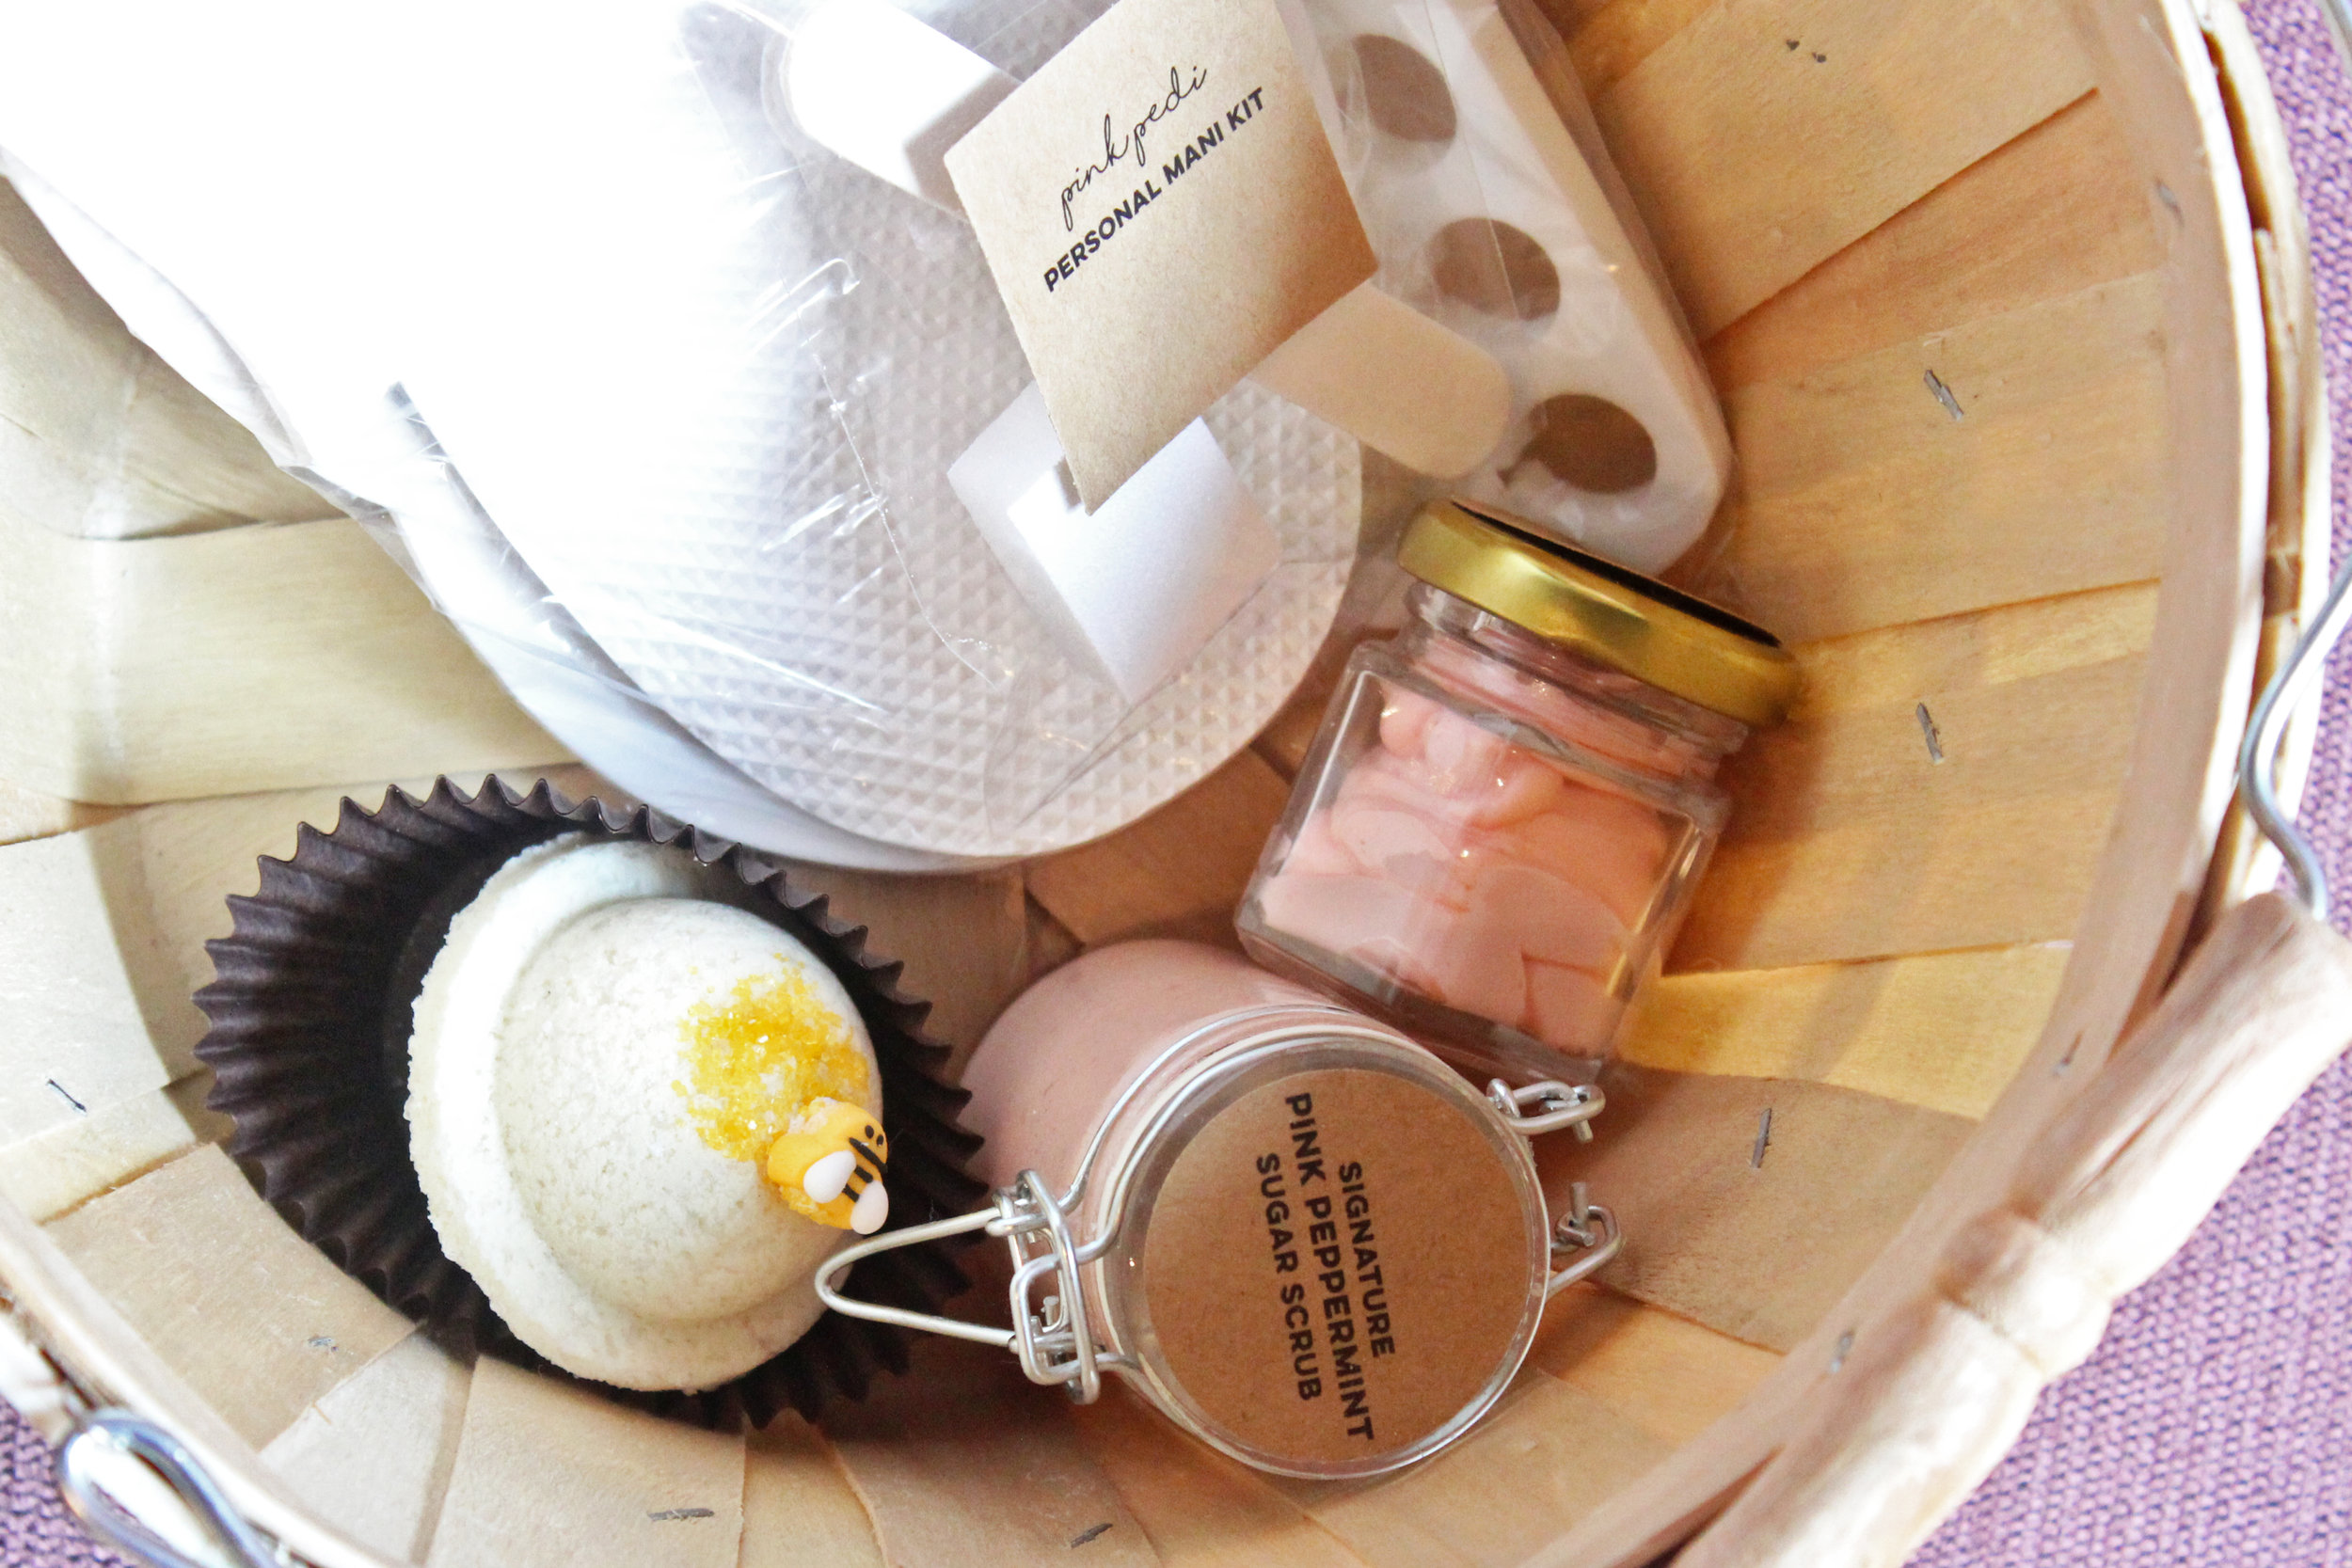 My customized basket at Pink Pedi with clean pedicure tools and my choice of a bath bomb, sugar scrub, and body butter.